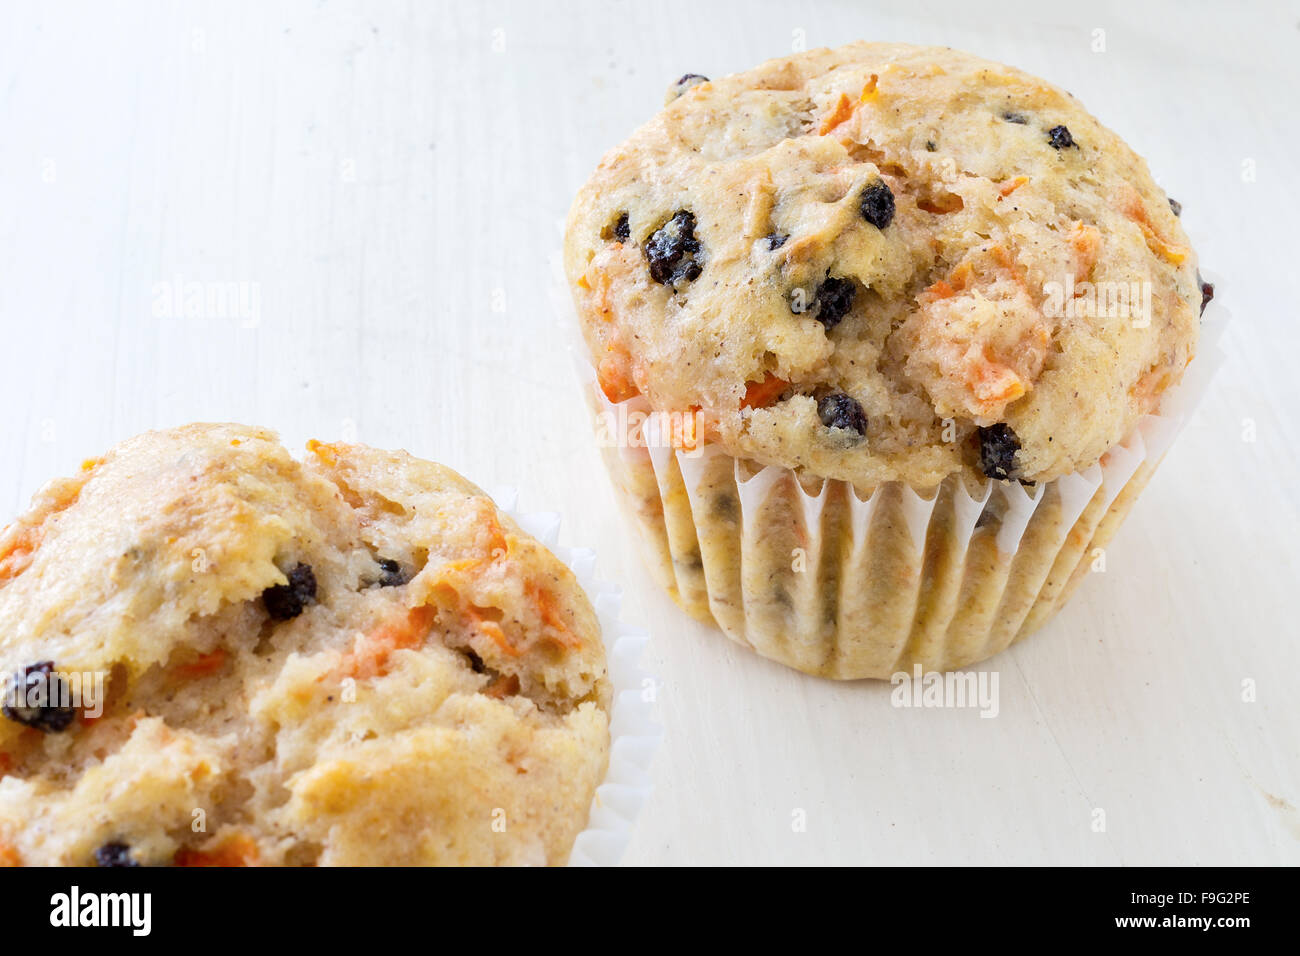 A pair of tasty homemade carrot raisin muffins. - Stock Image